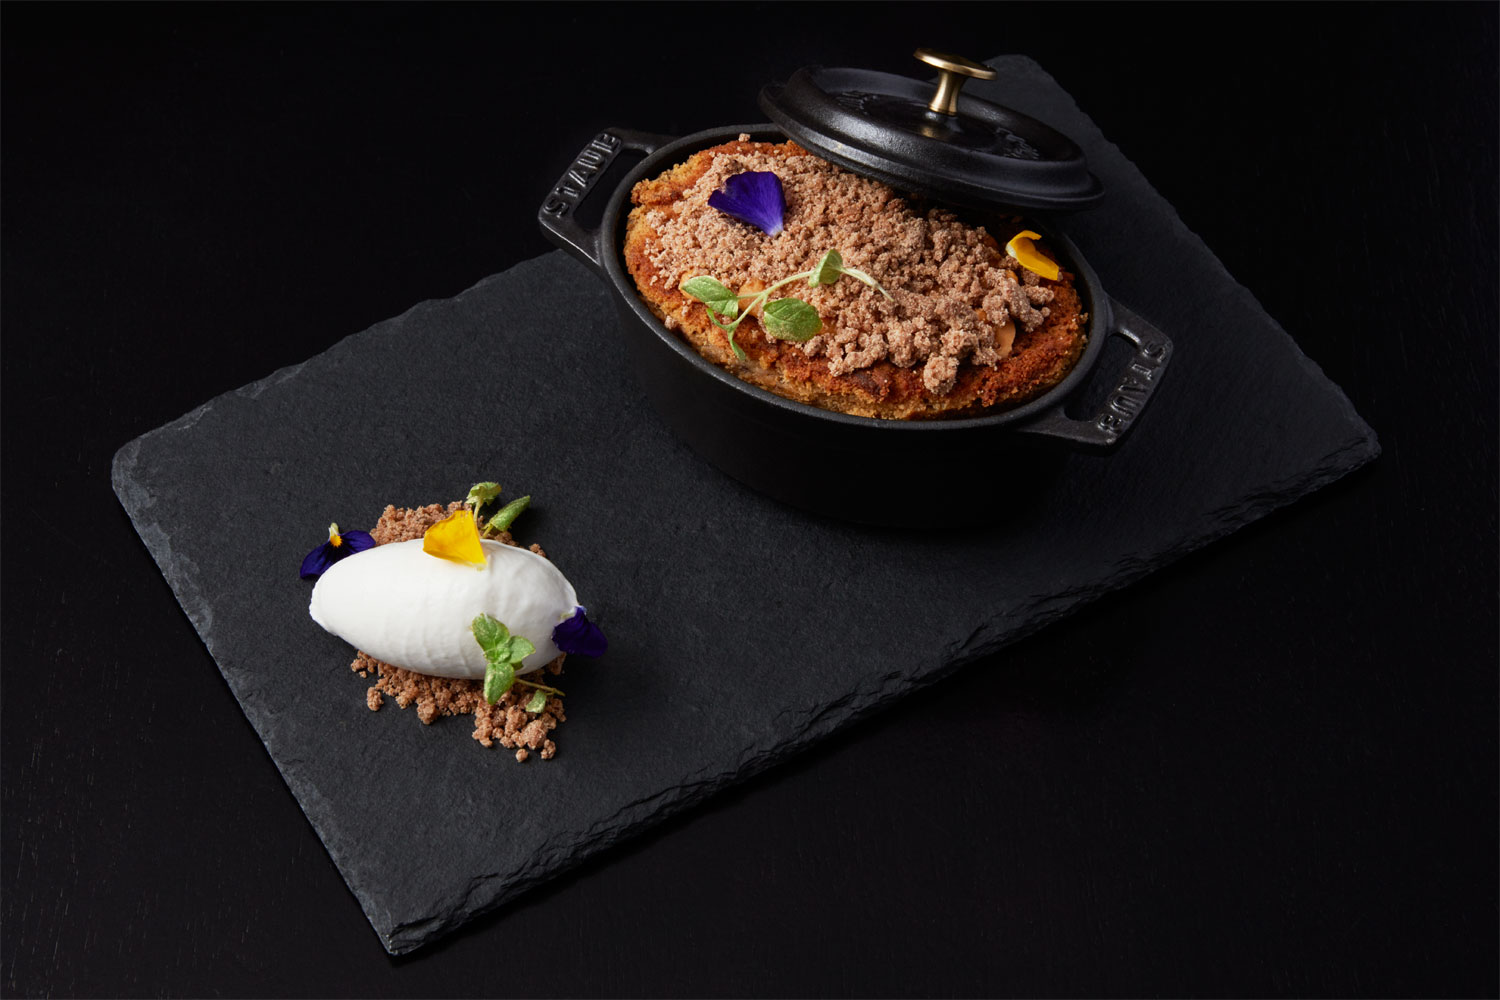 One of the dishes at POTUS restaurant Crowne Plaza London